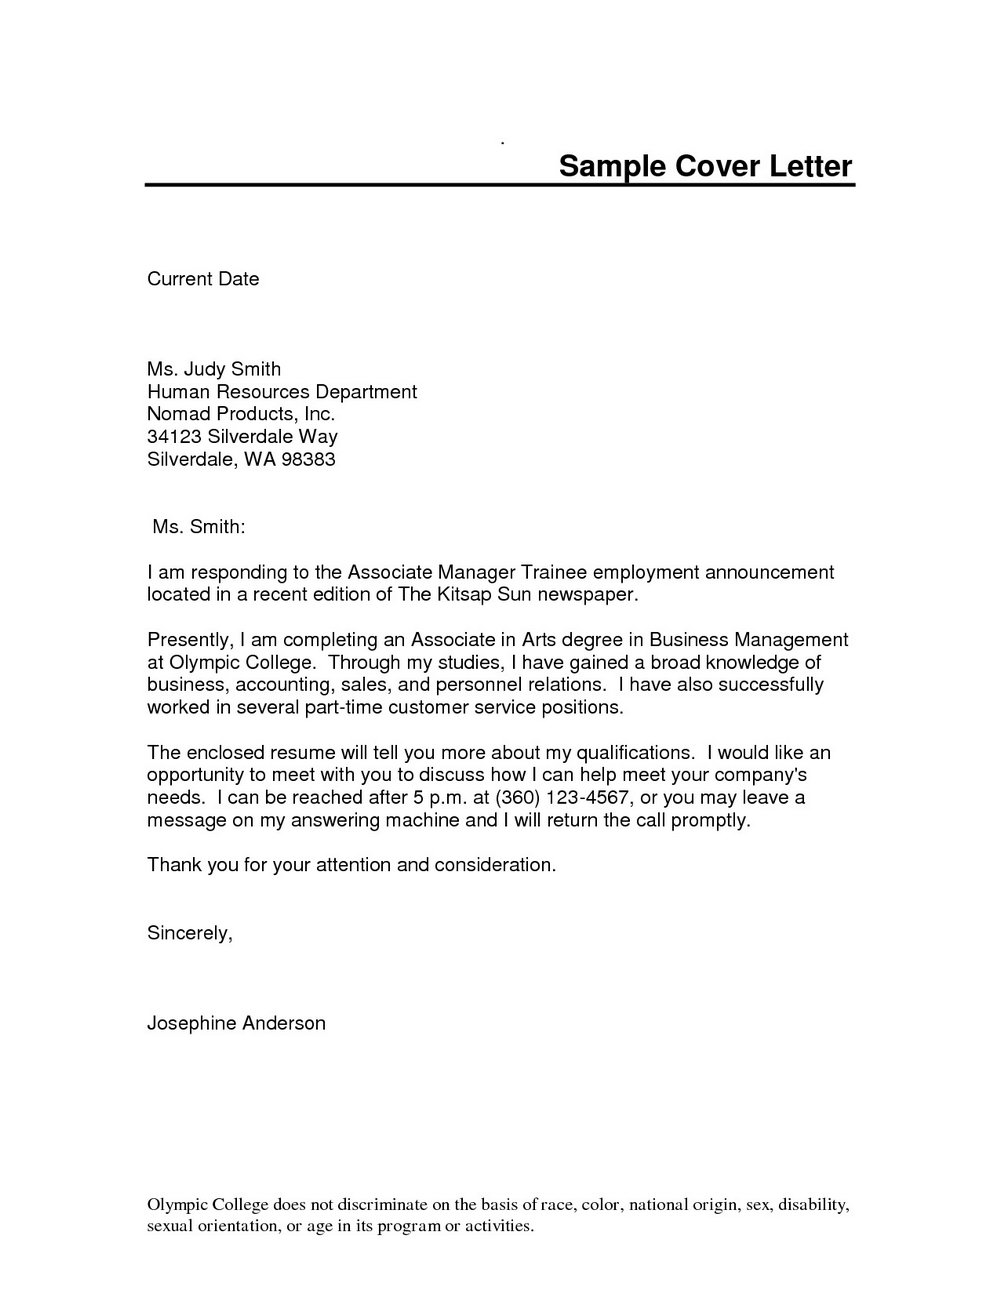 Cover Letter Sample For Resume Pdf